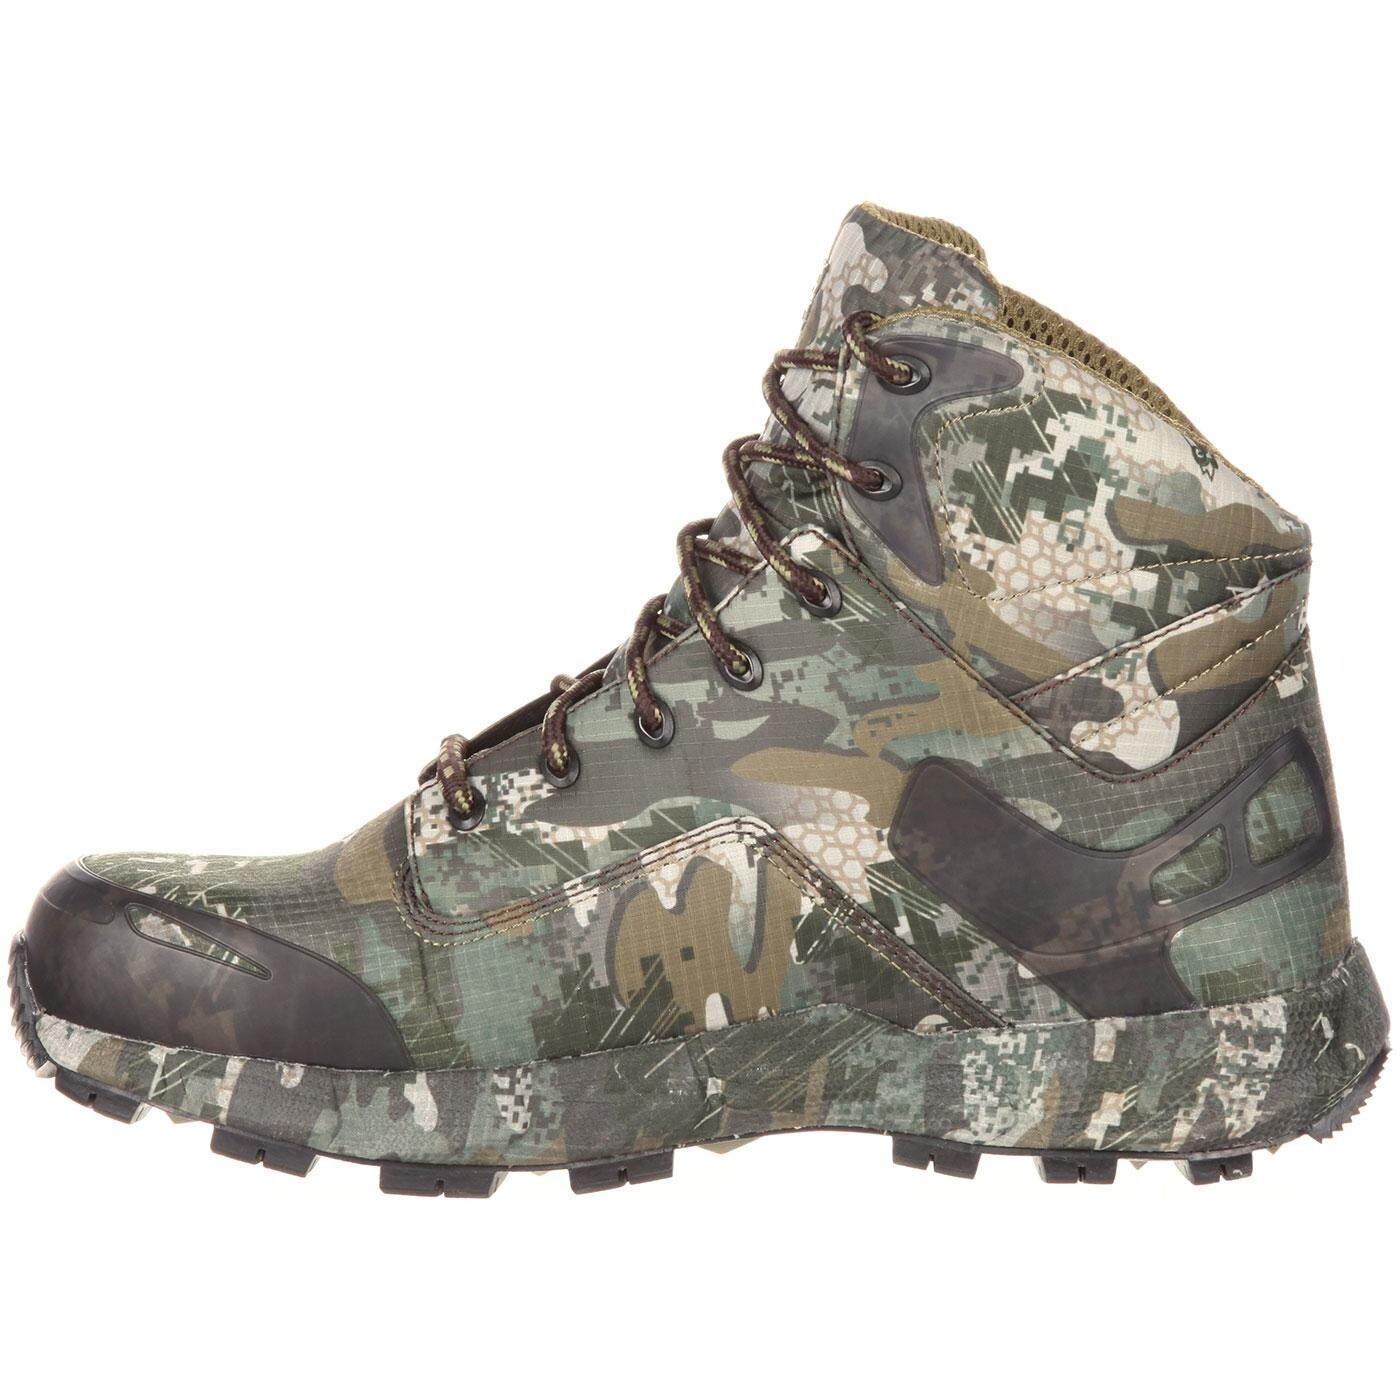 c66688ef8e6 Rocky Broadhead: Men's Waterproof Outdoor Boot